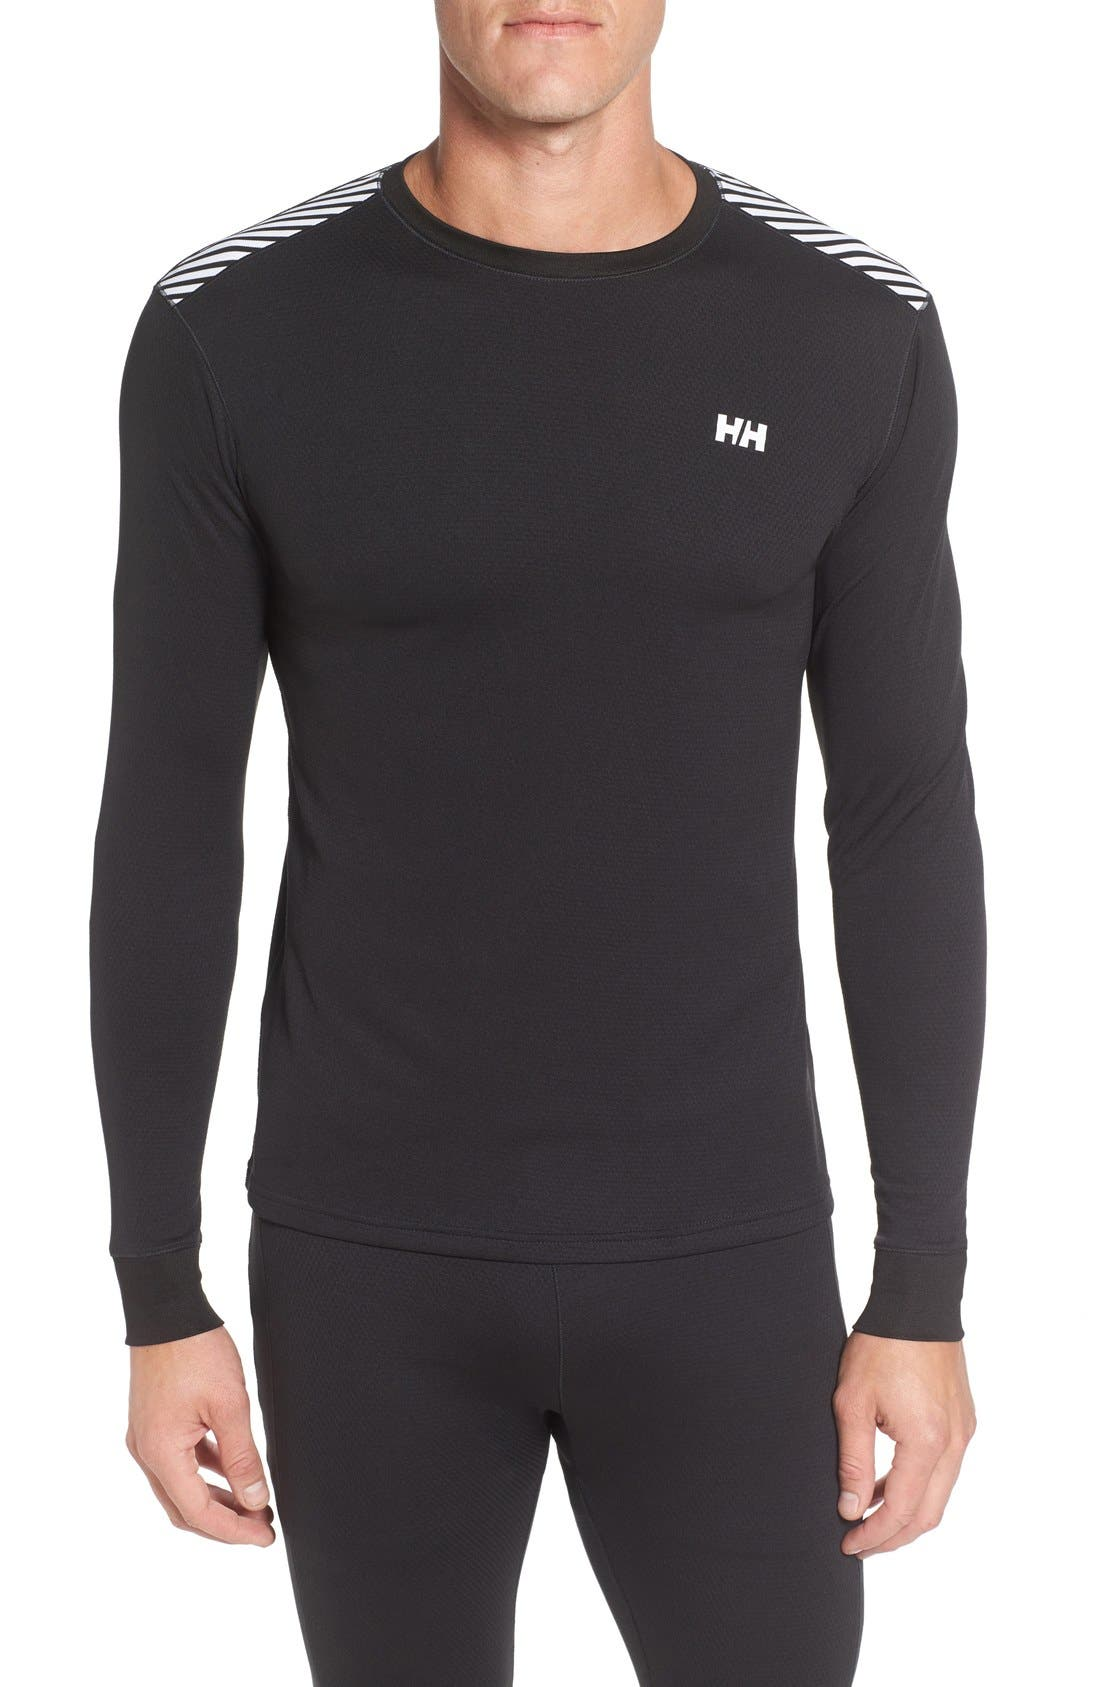 Helly Hansen 'Active Flow' Base Layer Long Sleeve T-Shirt